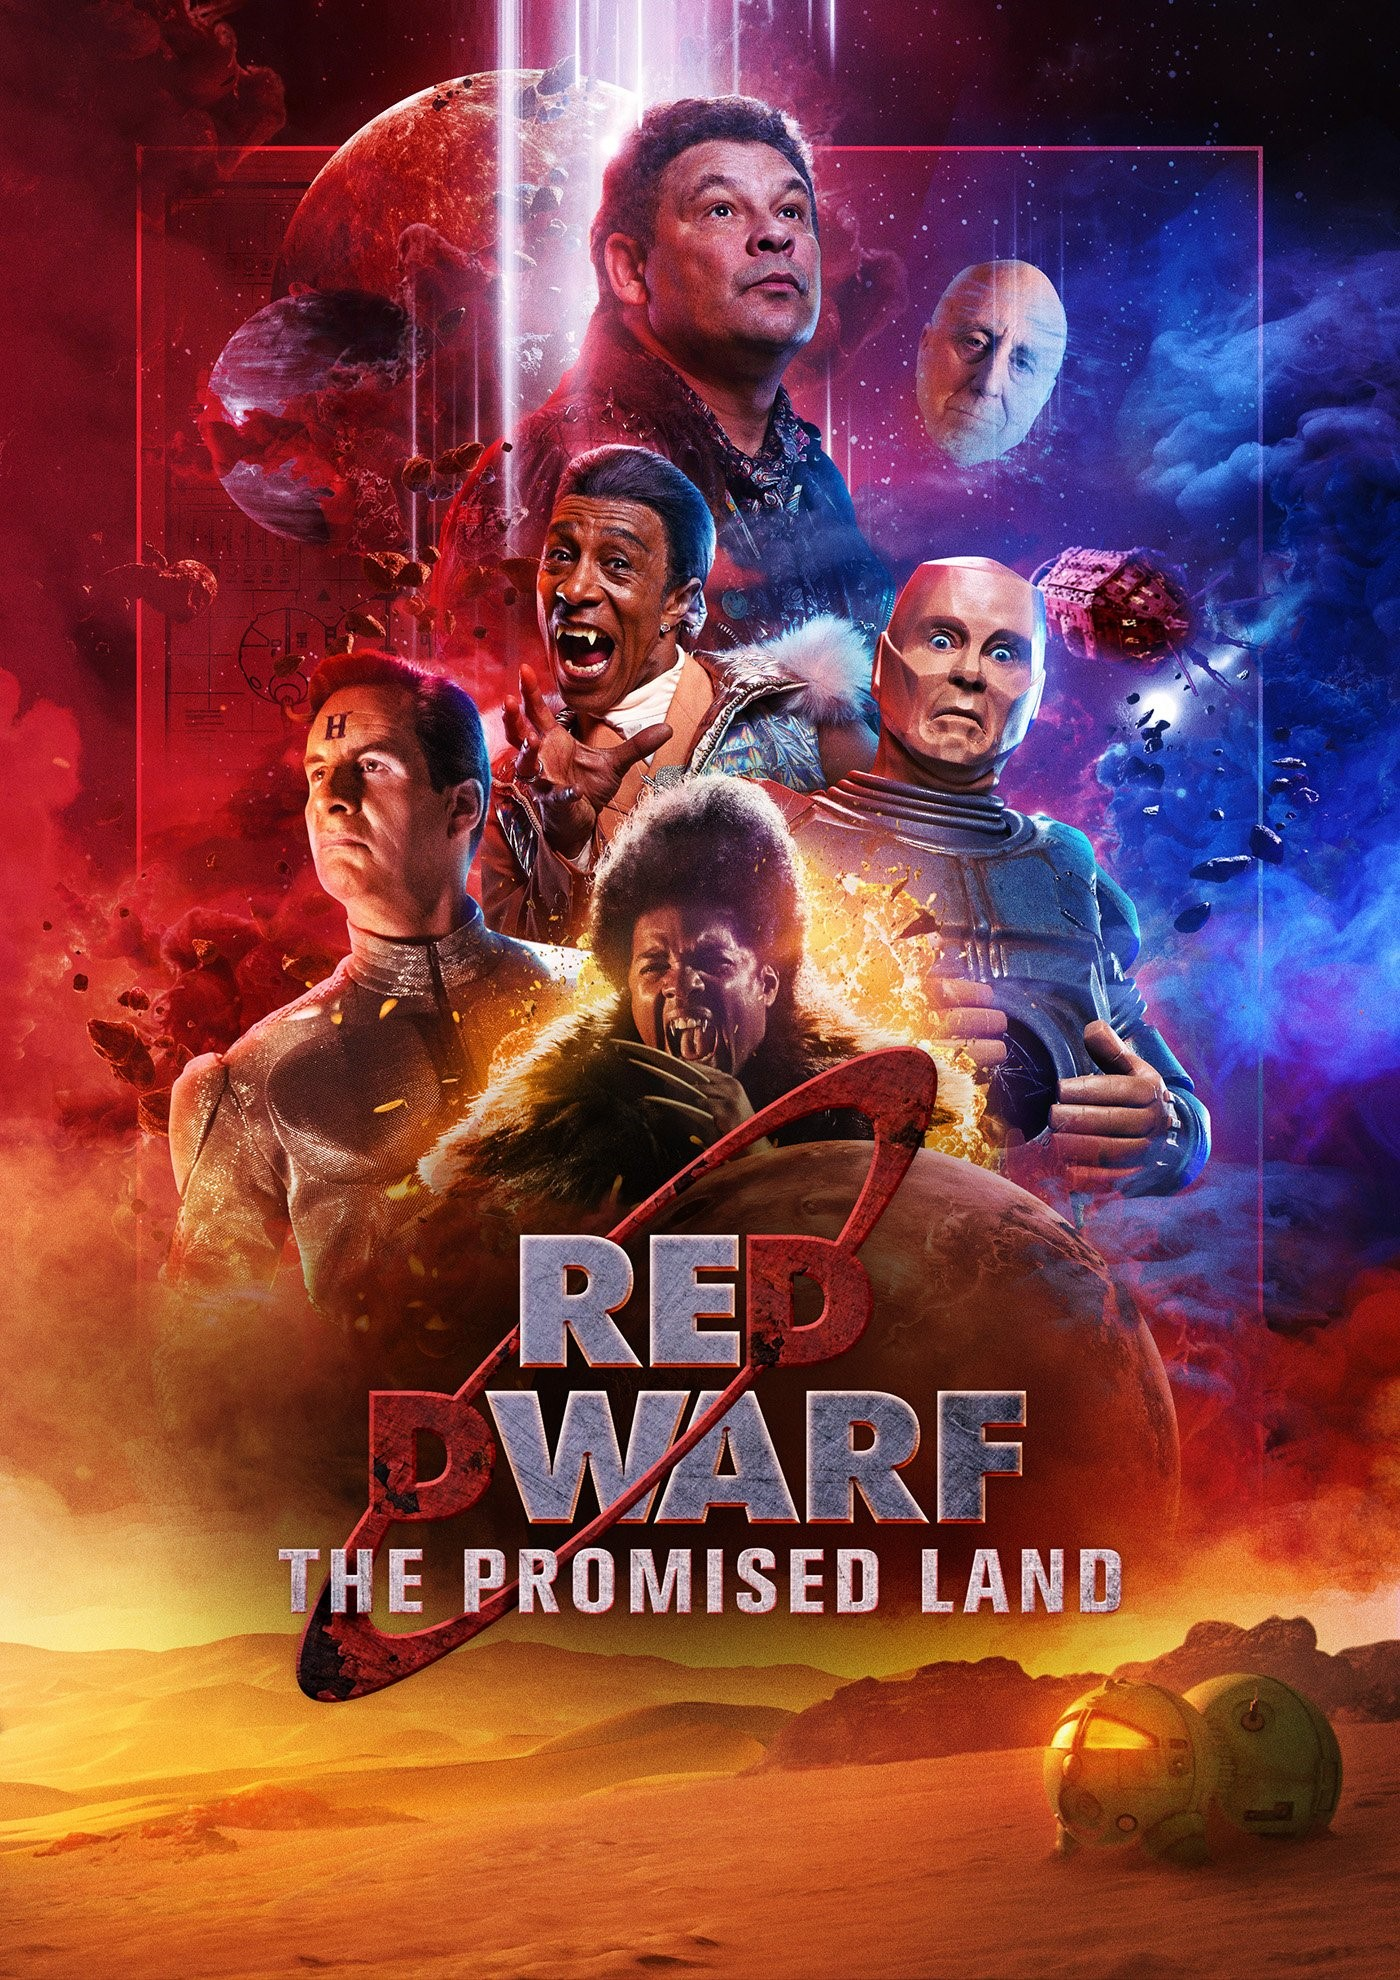 Red_Dwarf_-_The_Promised_Land_logo